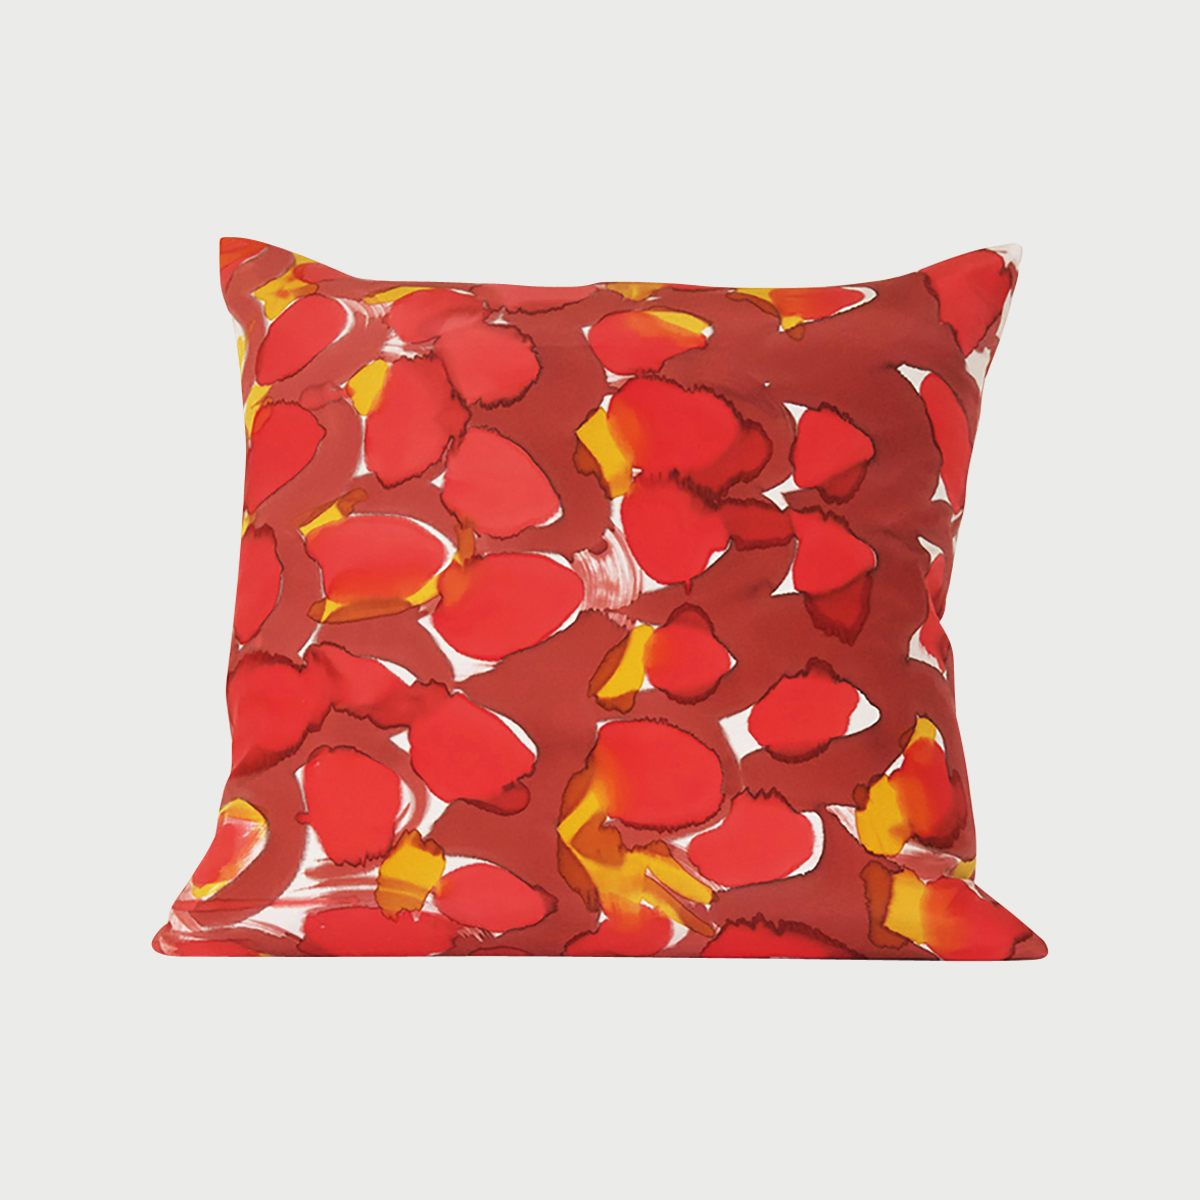 Hand Painted Red Scales Silk Charmeuse Pillow Square